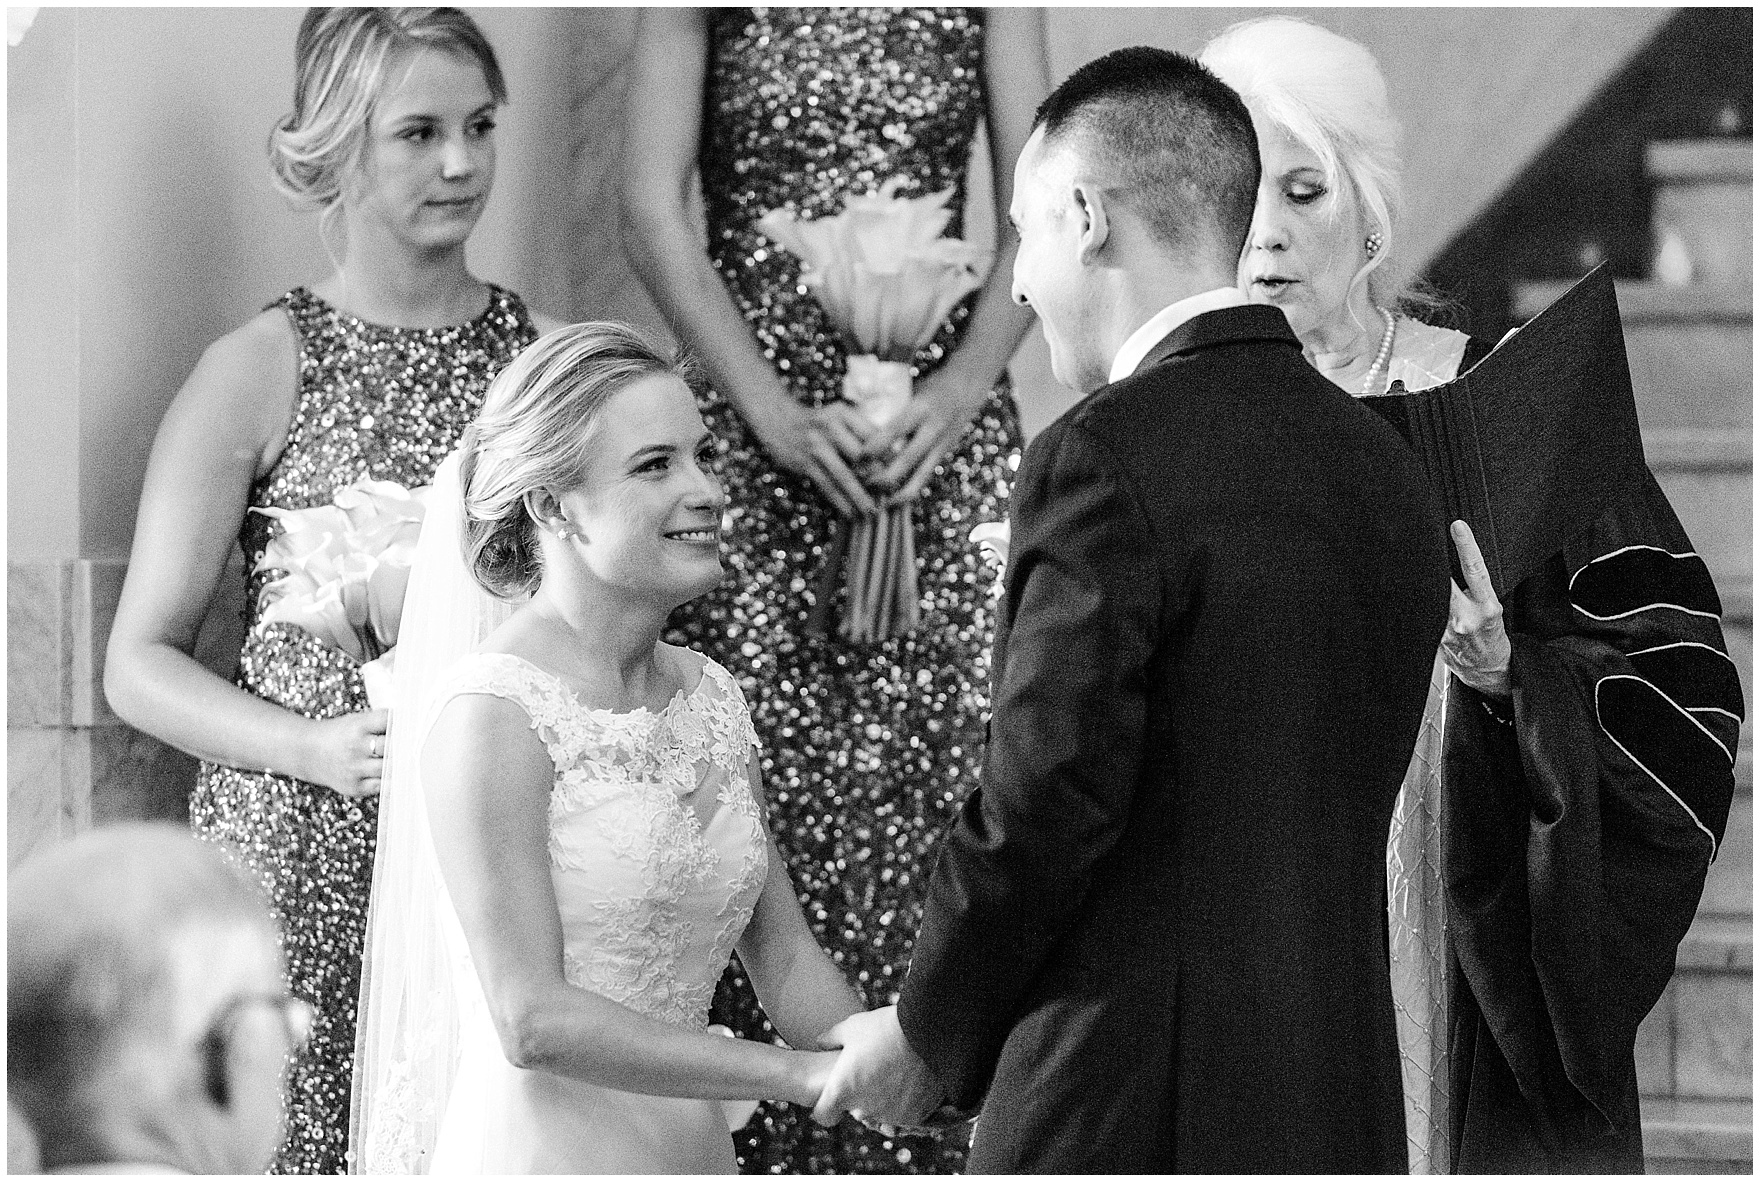 The bride and groom exchange vows during a Newberry Library Chicago wedding.